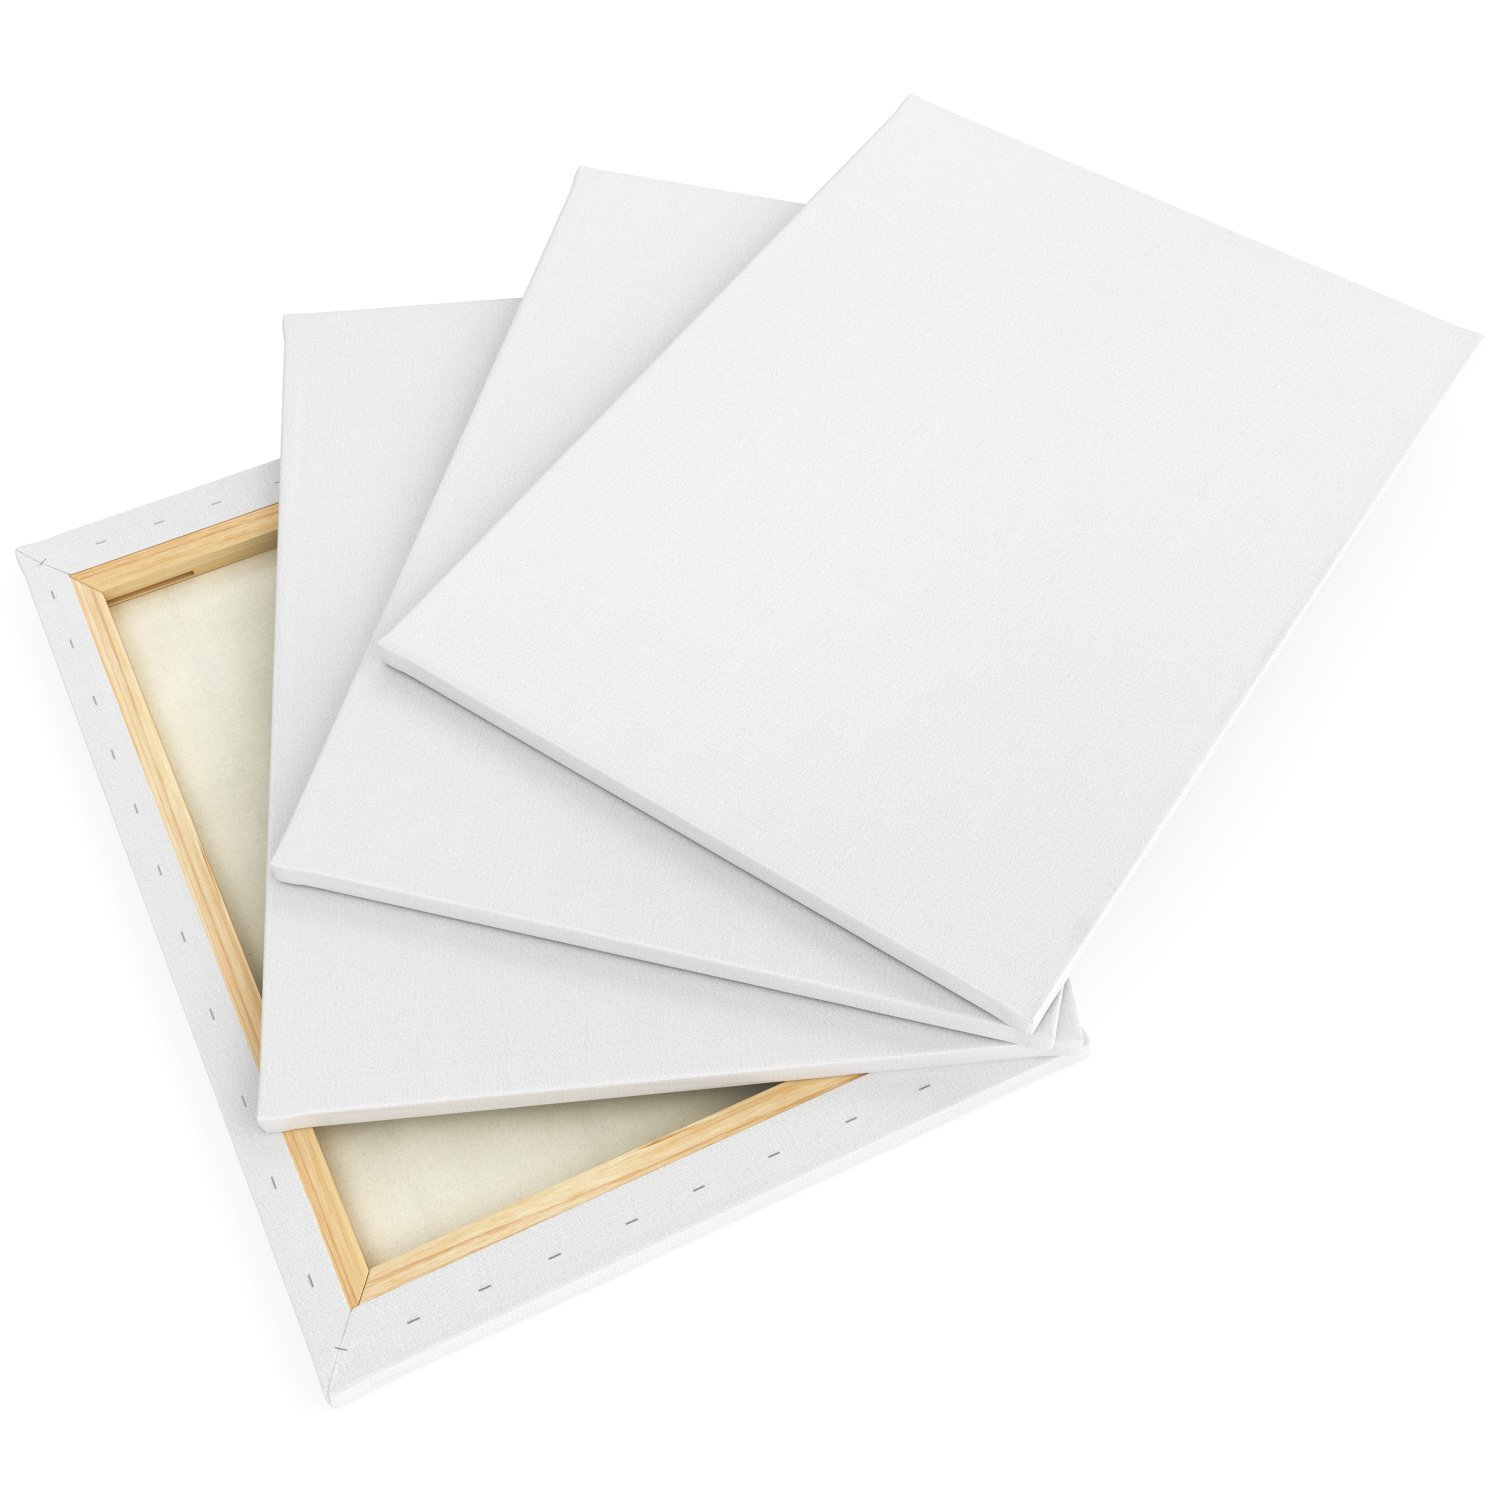 """Arteza 18x24"""" Stretched White Blank Canvas, Bulk Pack of 4, Primed, 100% Cotton for Painting, Acrylic Pouring, Oil Paint & Wet Art Media, Canvases for Professional Artist, Hobby Painters & Beginner by ARTEZA (Image #2)"""